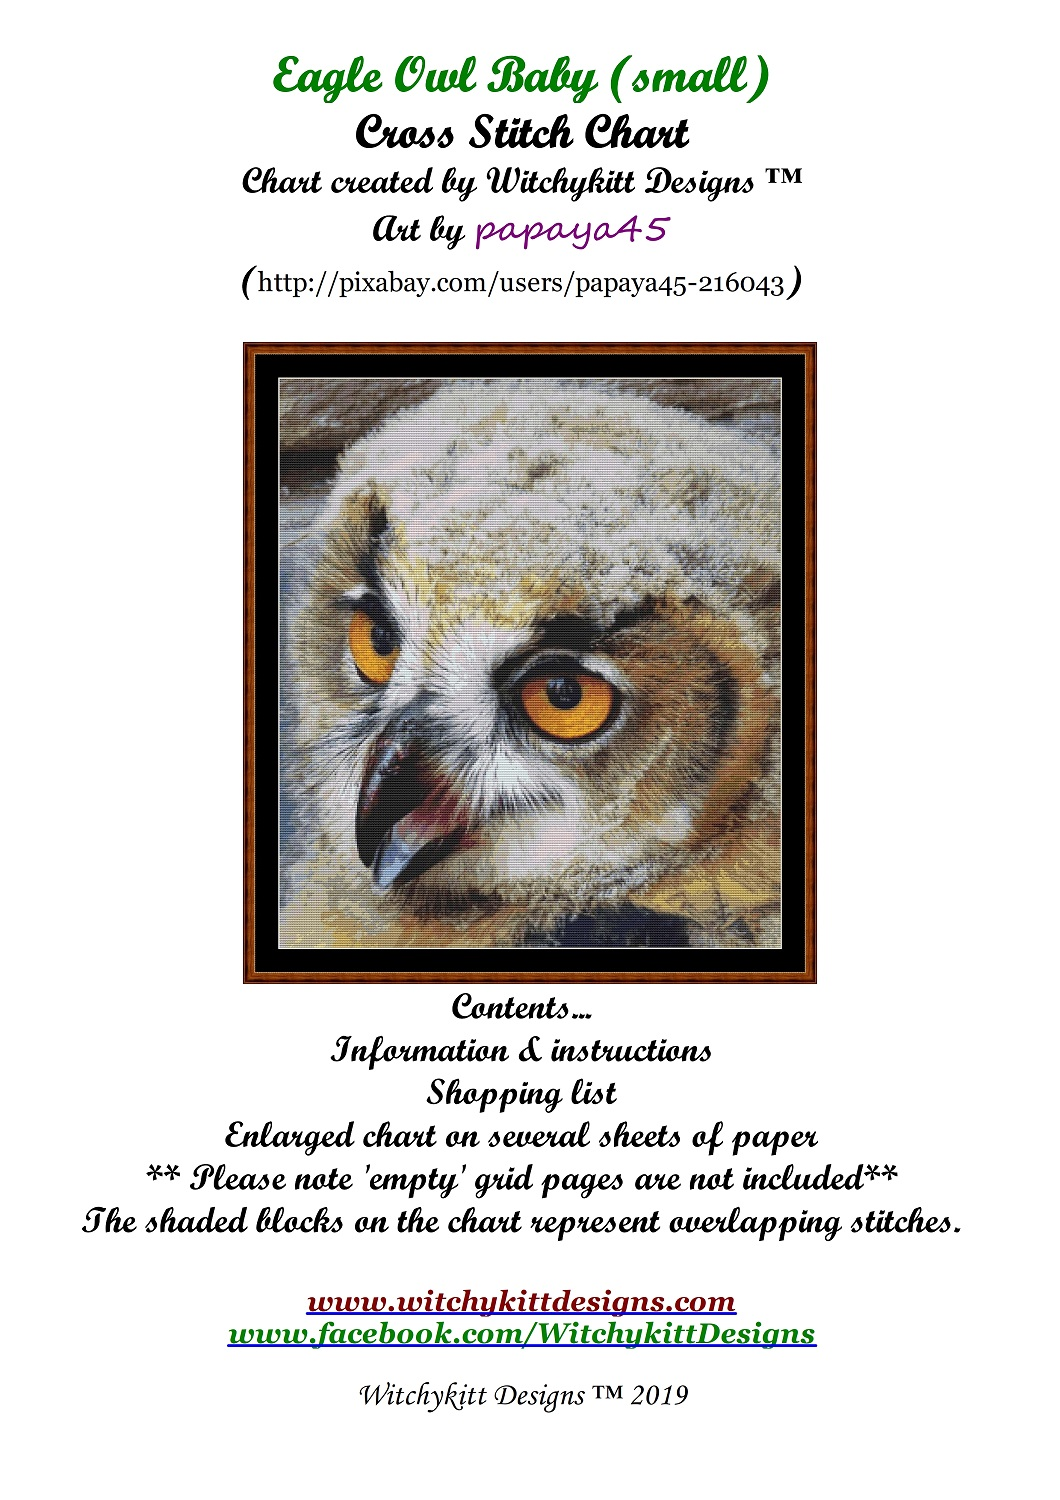 Eagle Owl Baby Cross Stitch